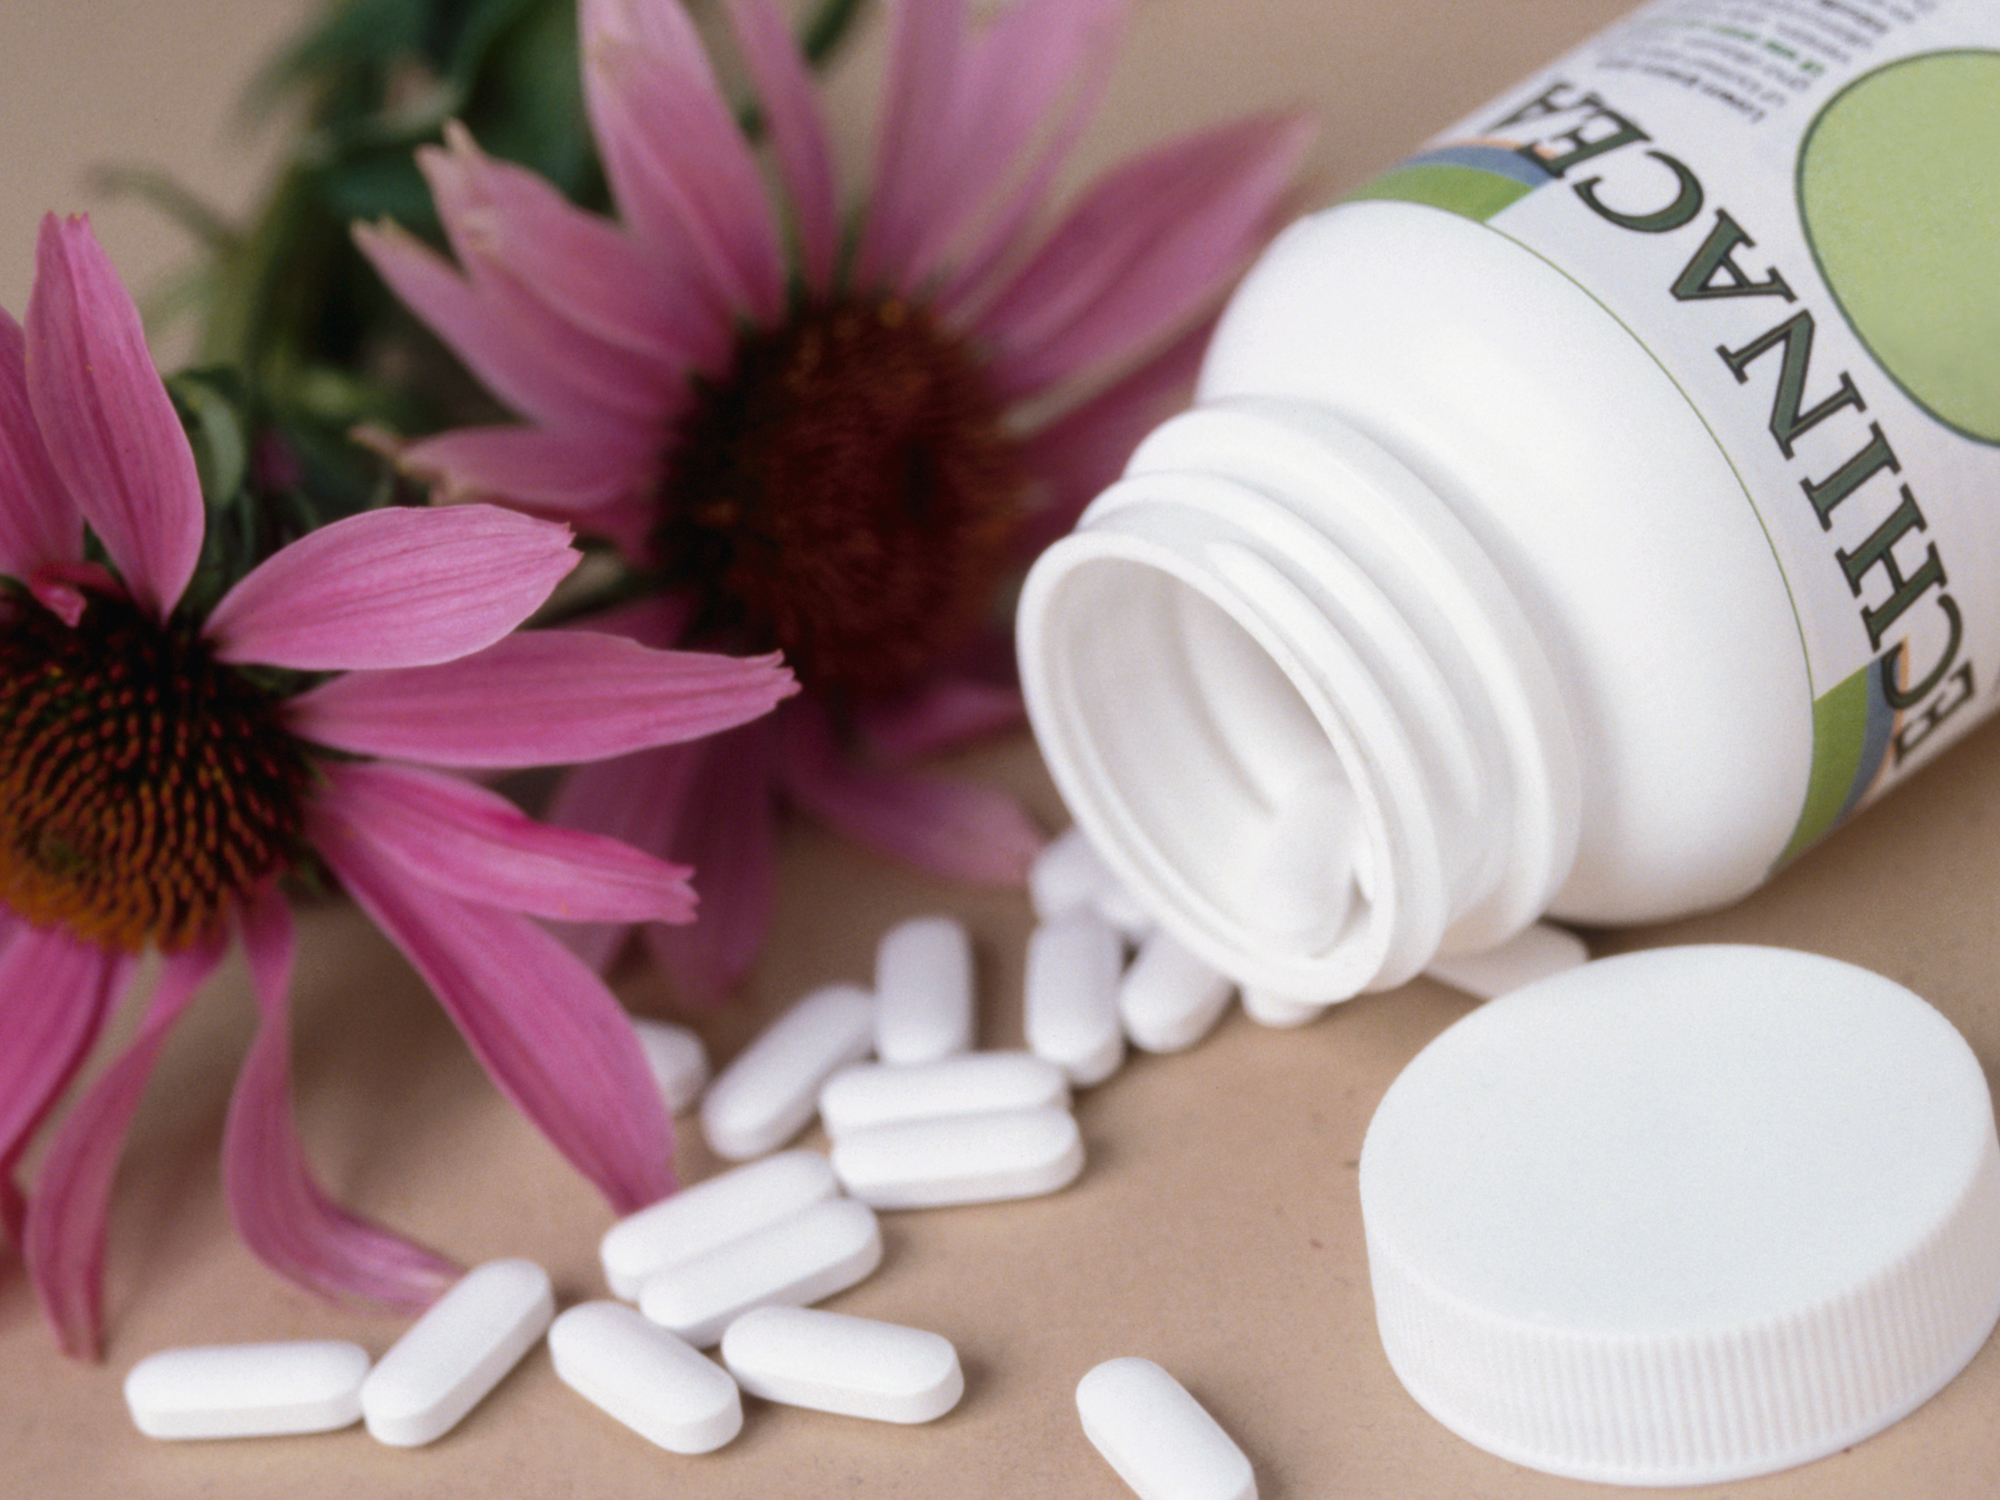 Echinacea: Potent remedy or costly risk?